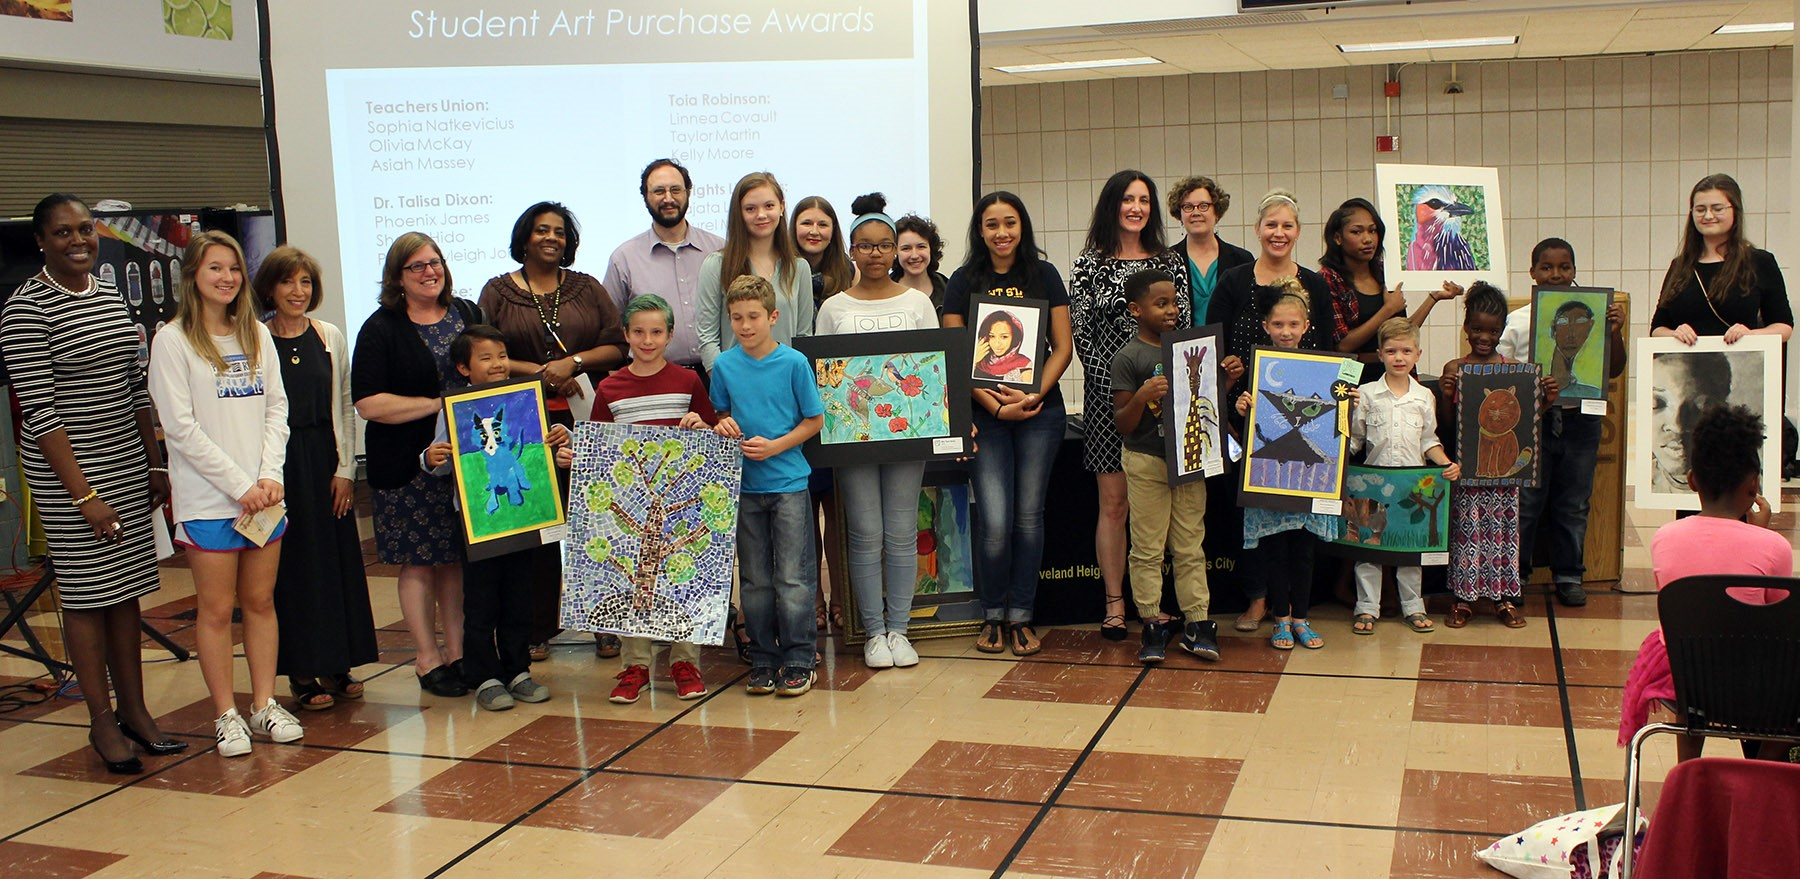 Art purchase awards